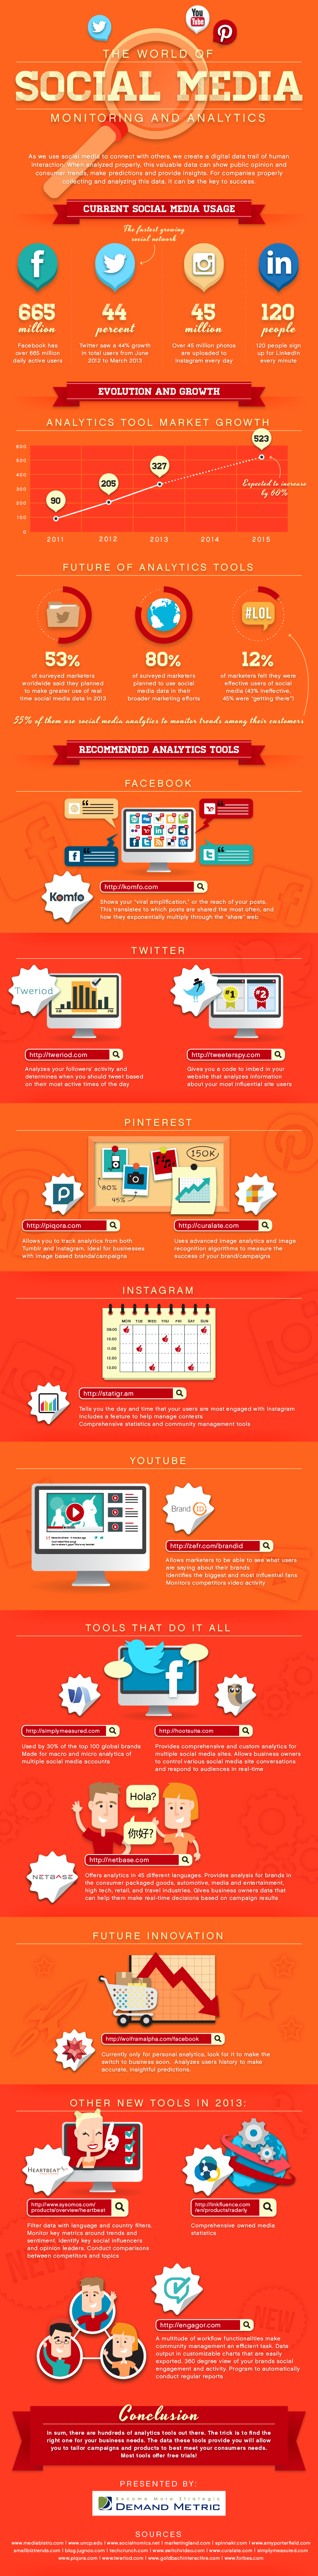 The World of Social Media Monitoring and Analytics [#infographic]